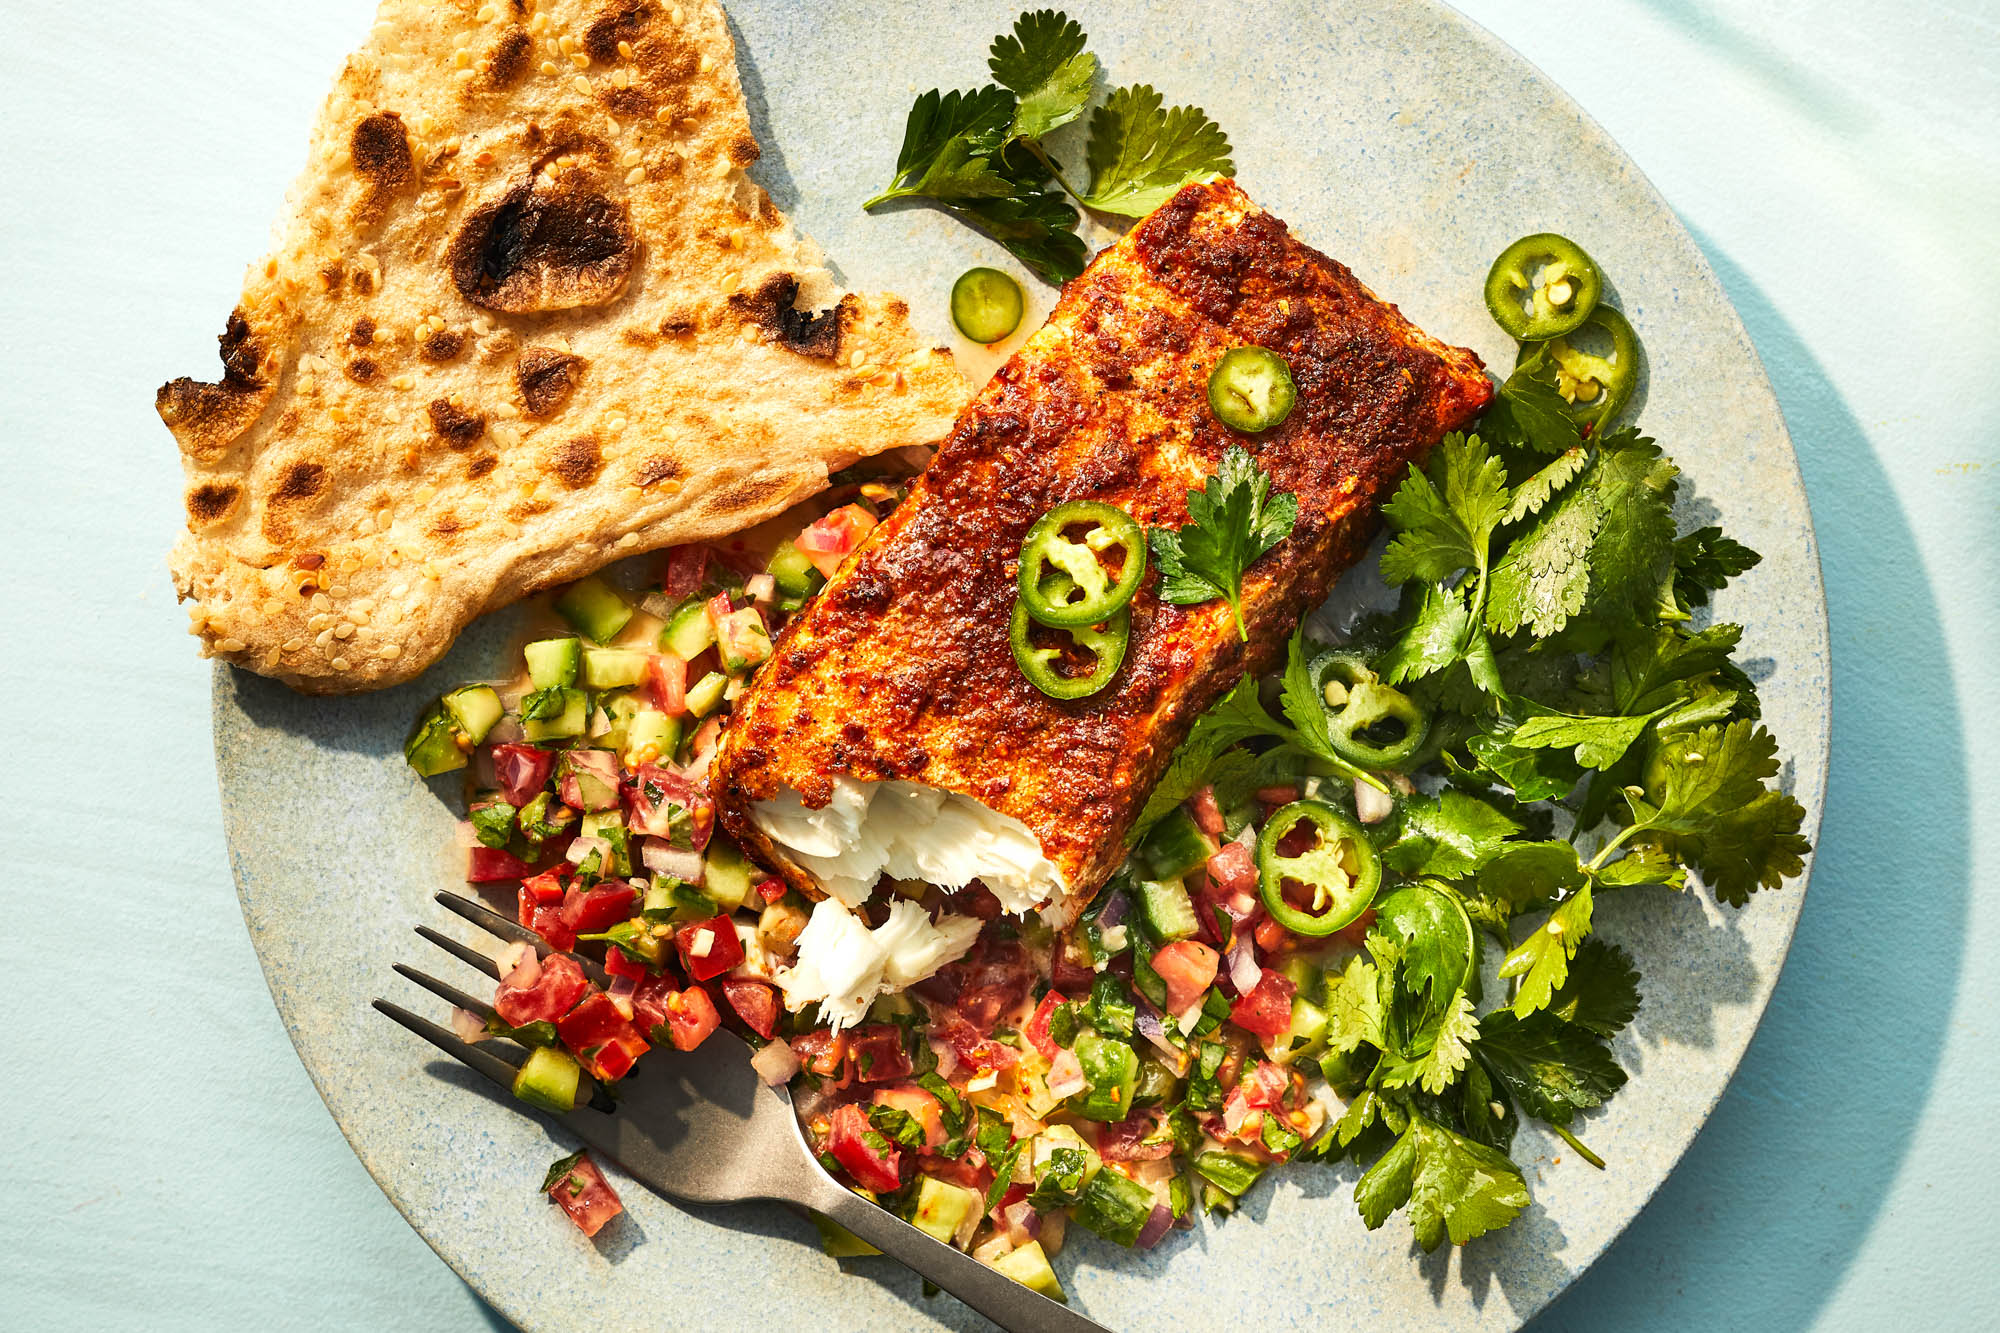 Spice Roasted Halibut with Herbs and Tahini Salad